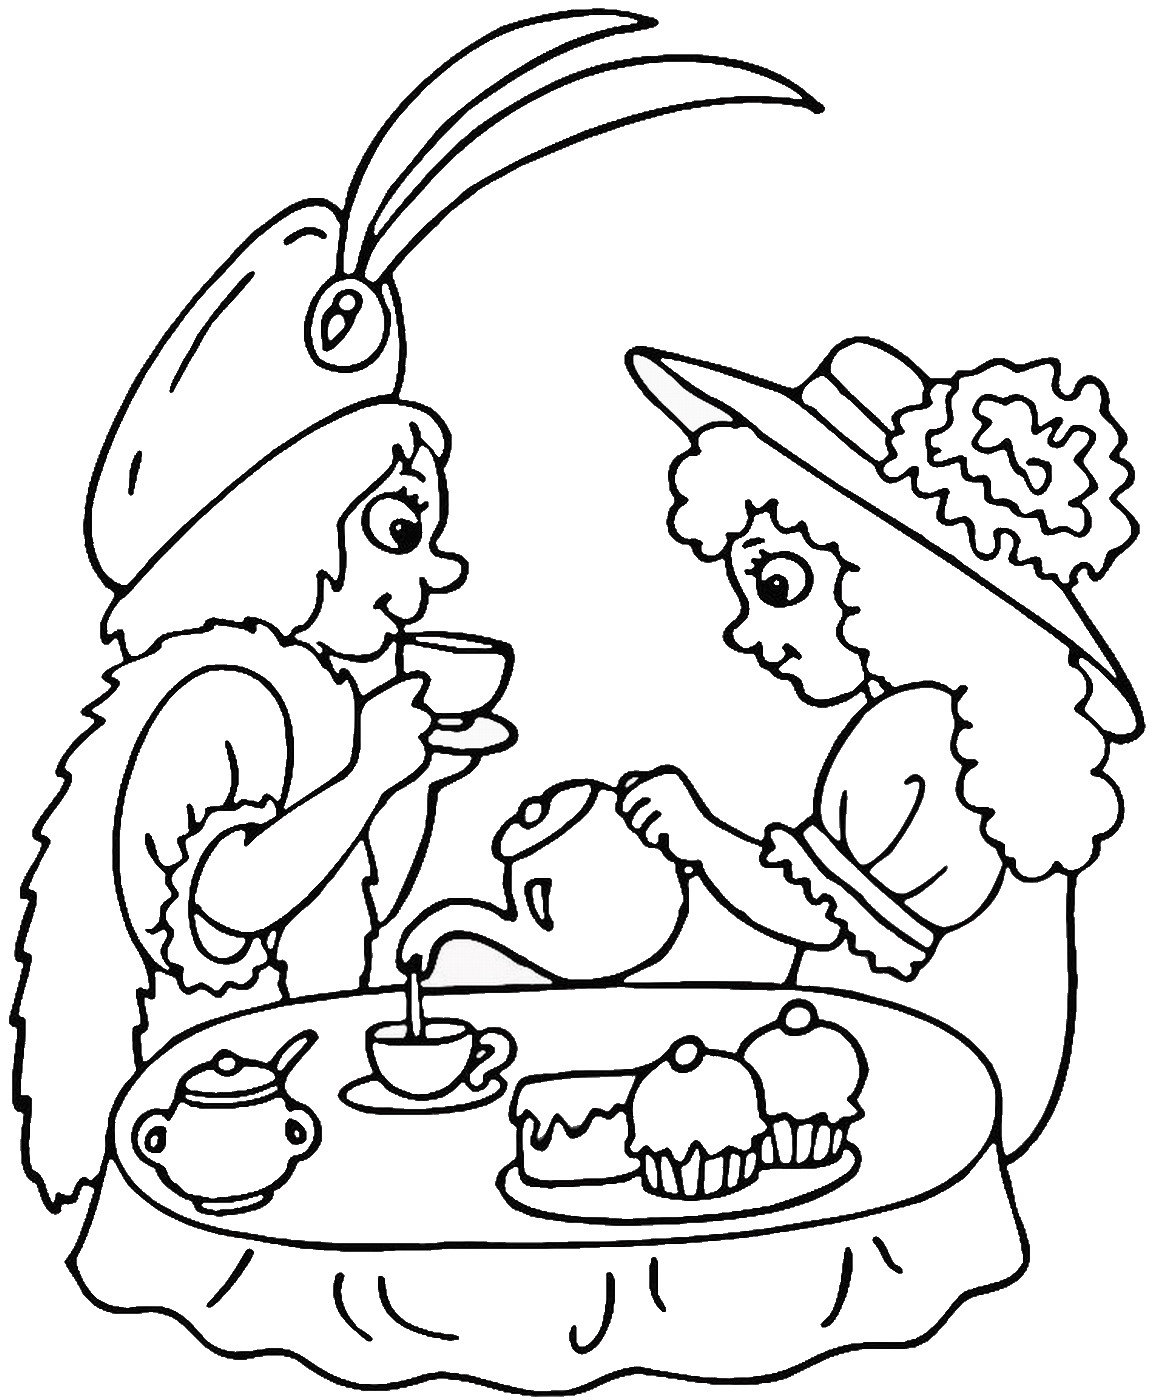 tea party colouring pages tea party coloring pages to download and print for free pages tea party colouring